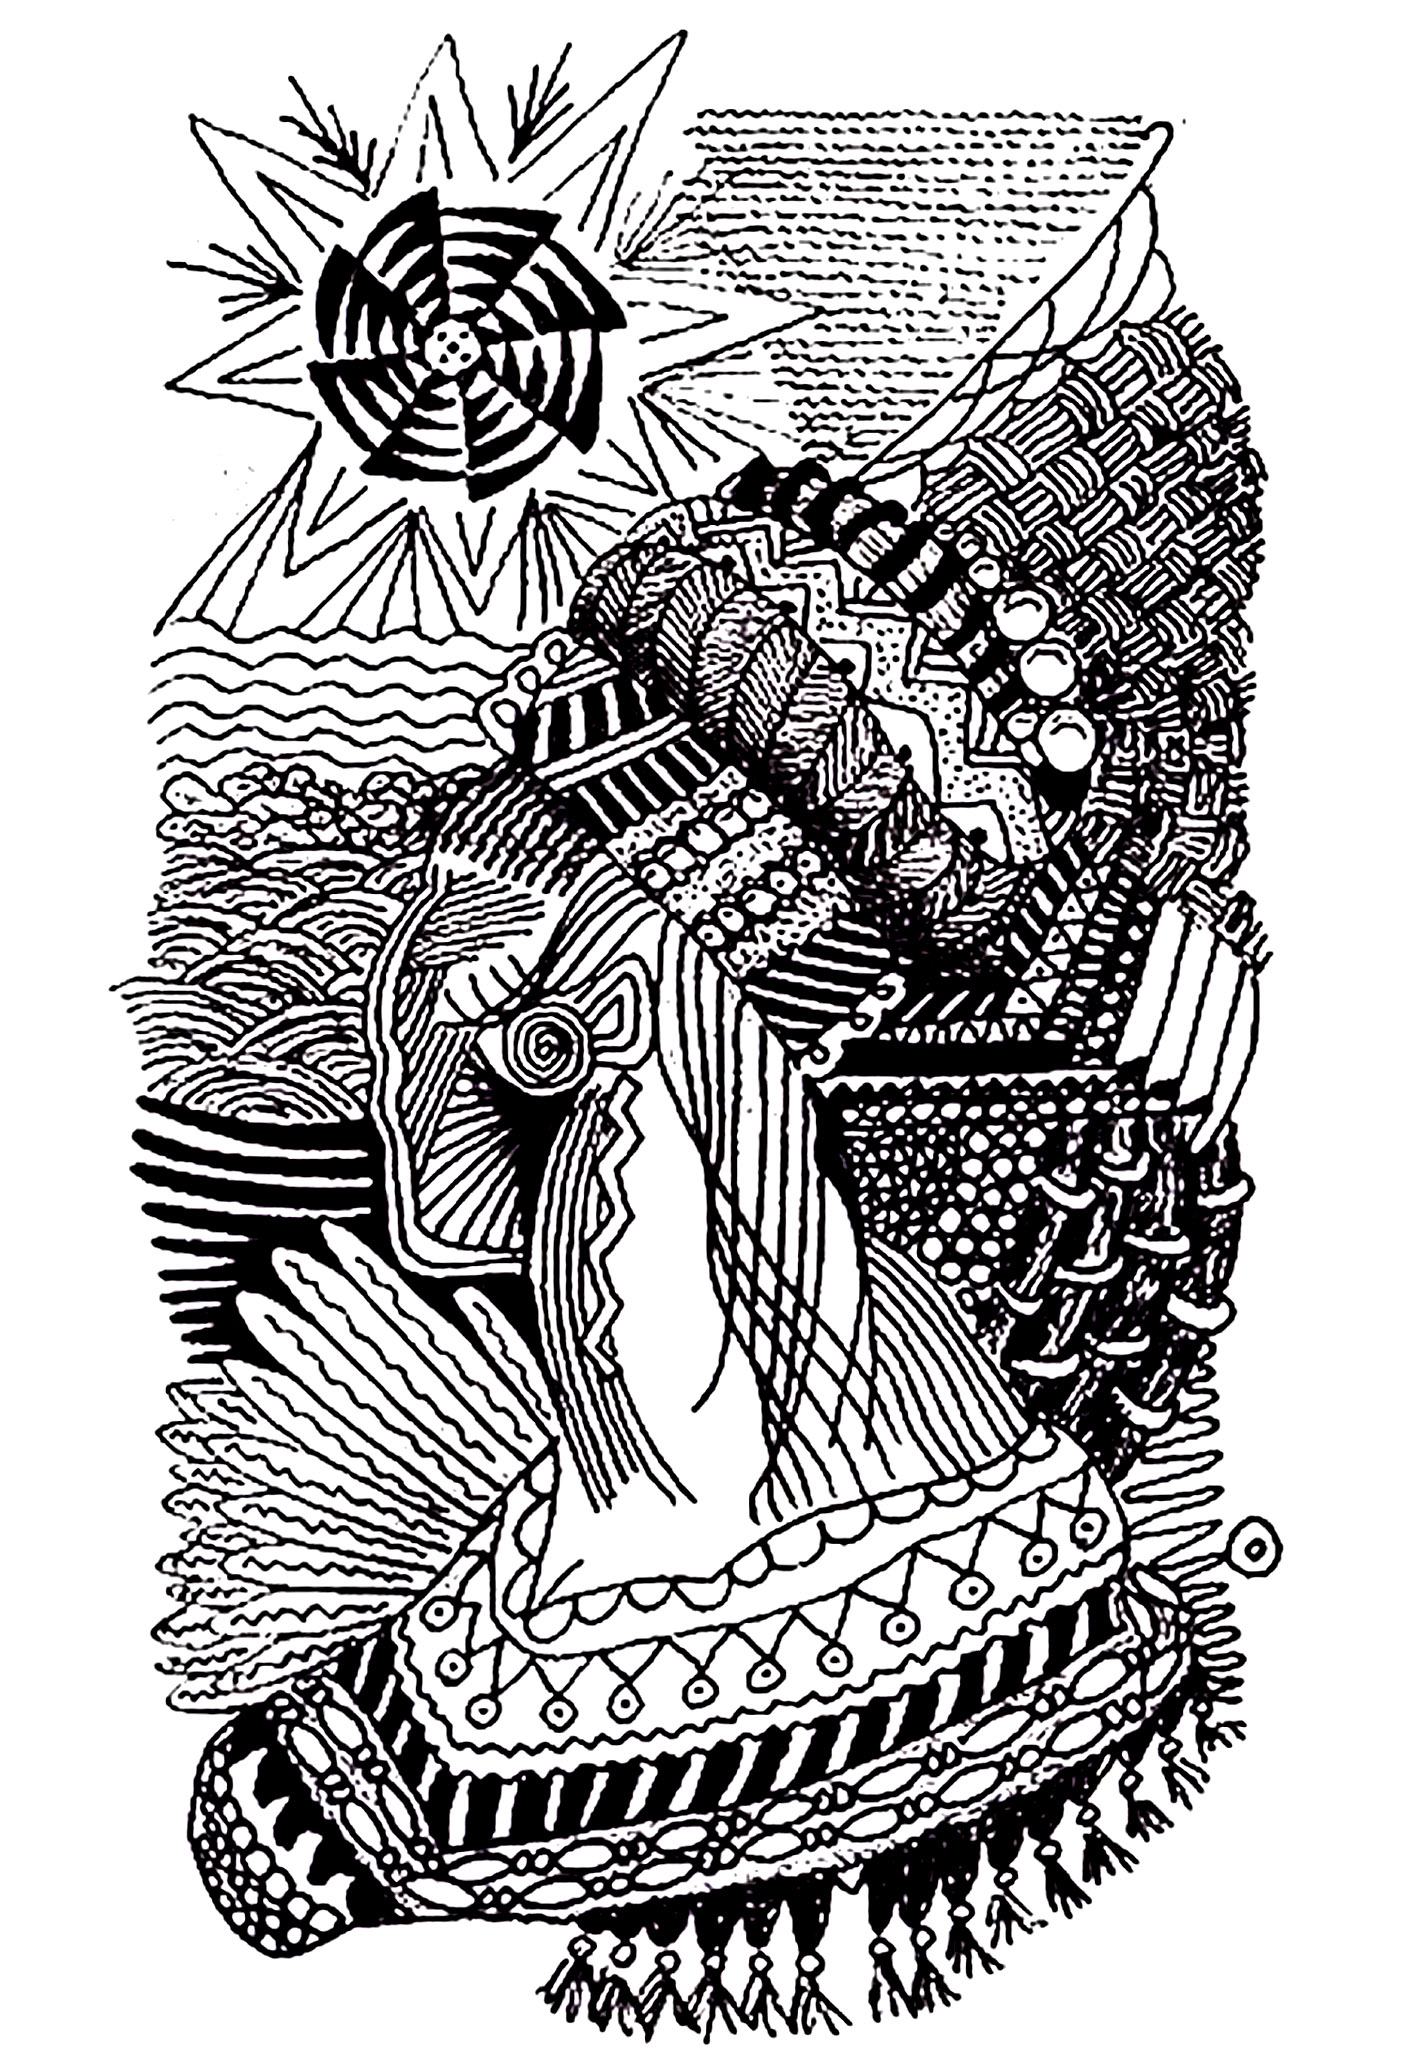 Zentangle style drawing, of an african woman